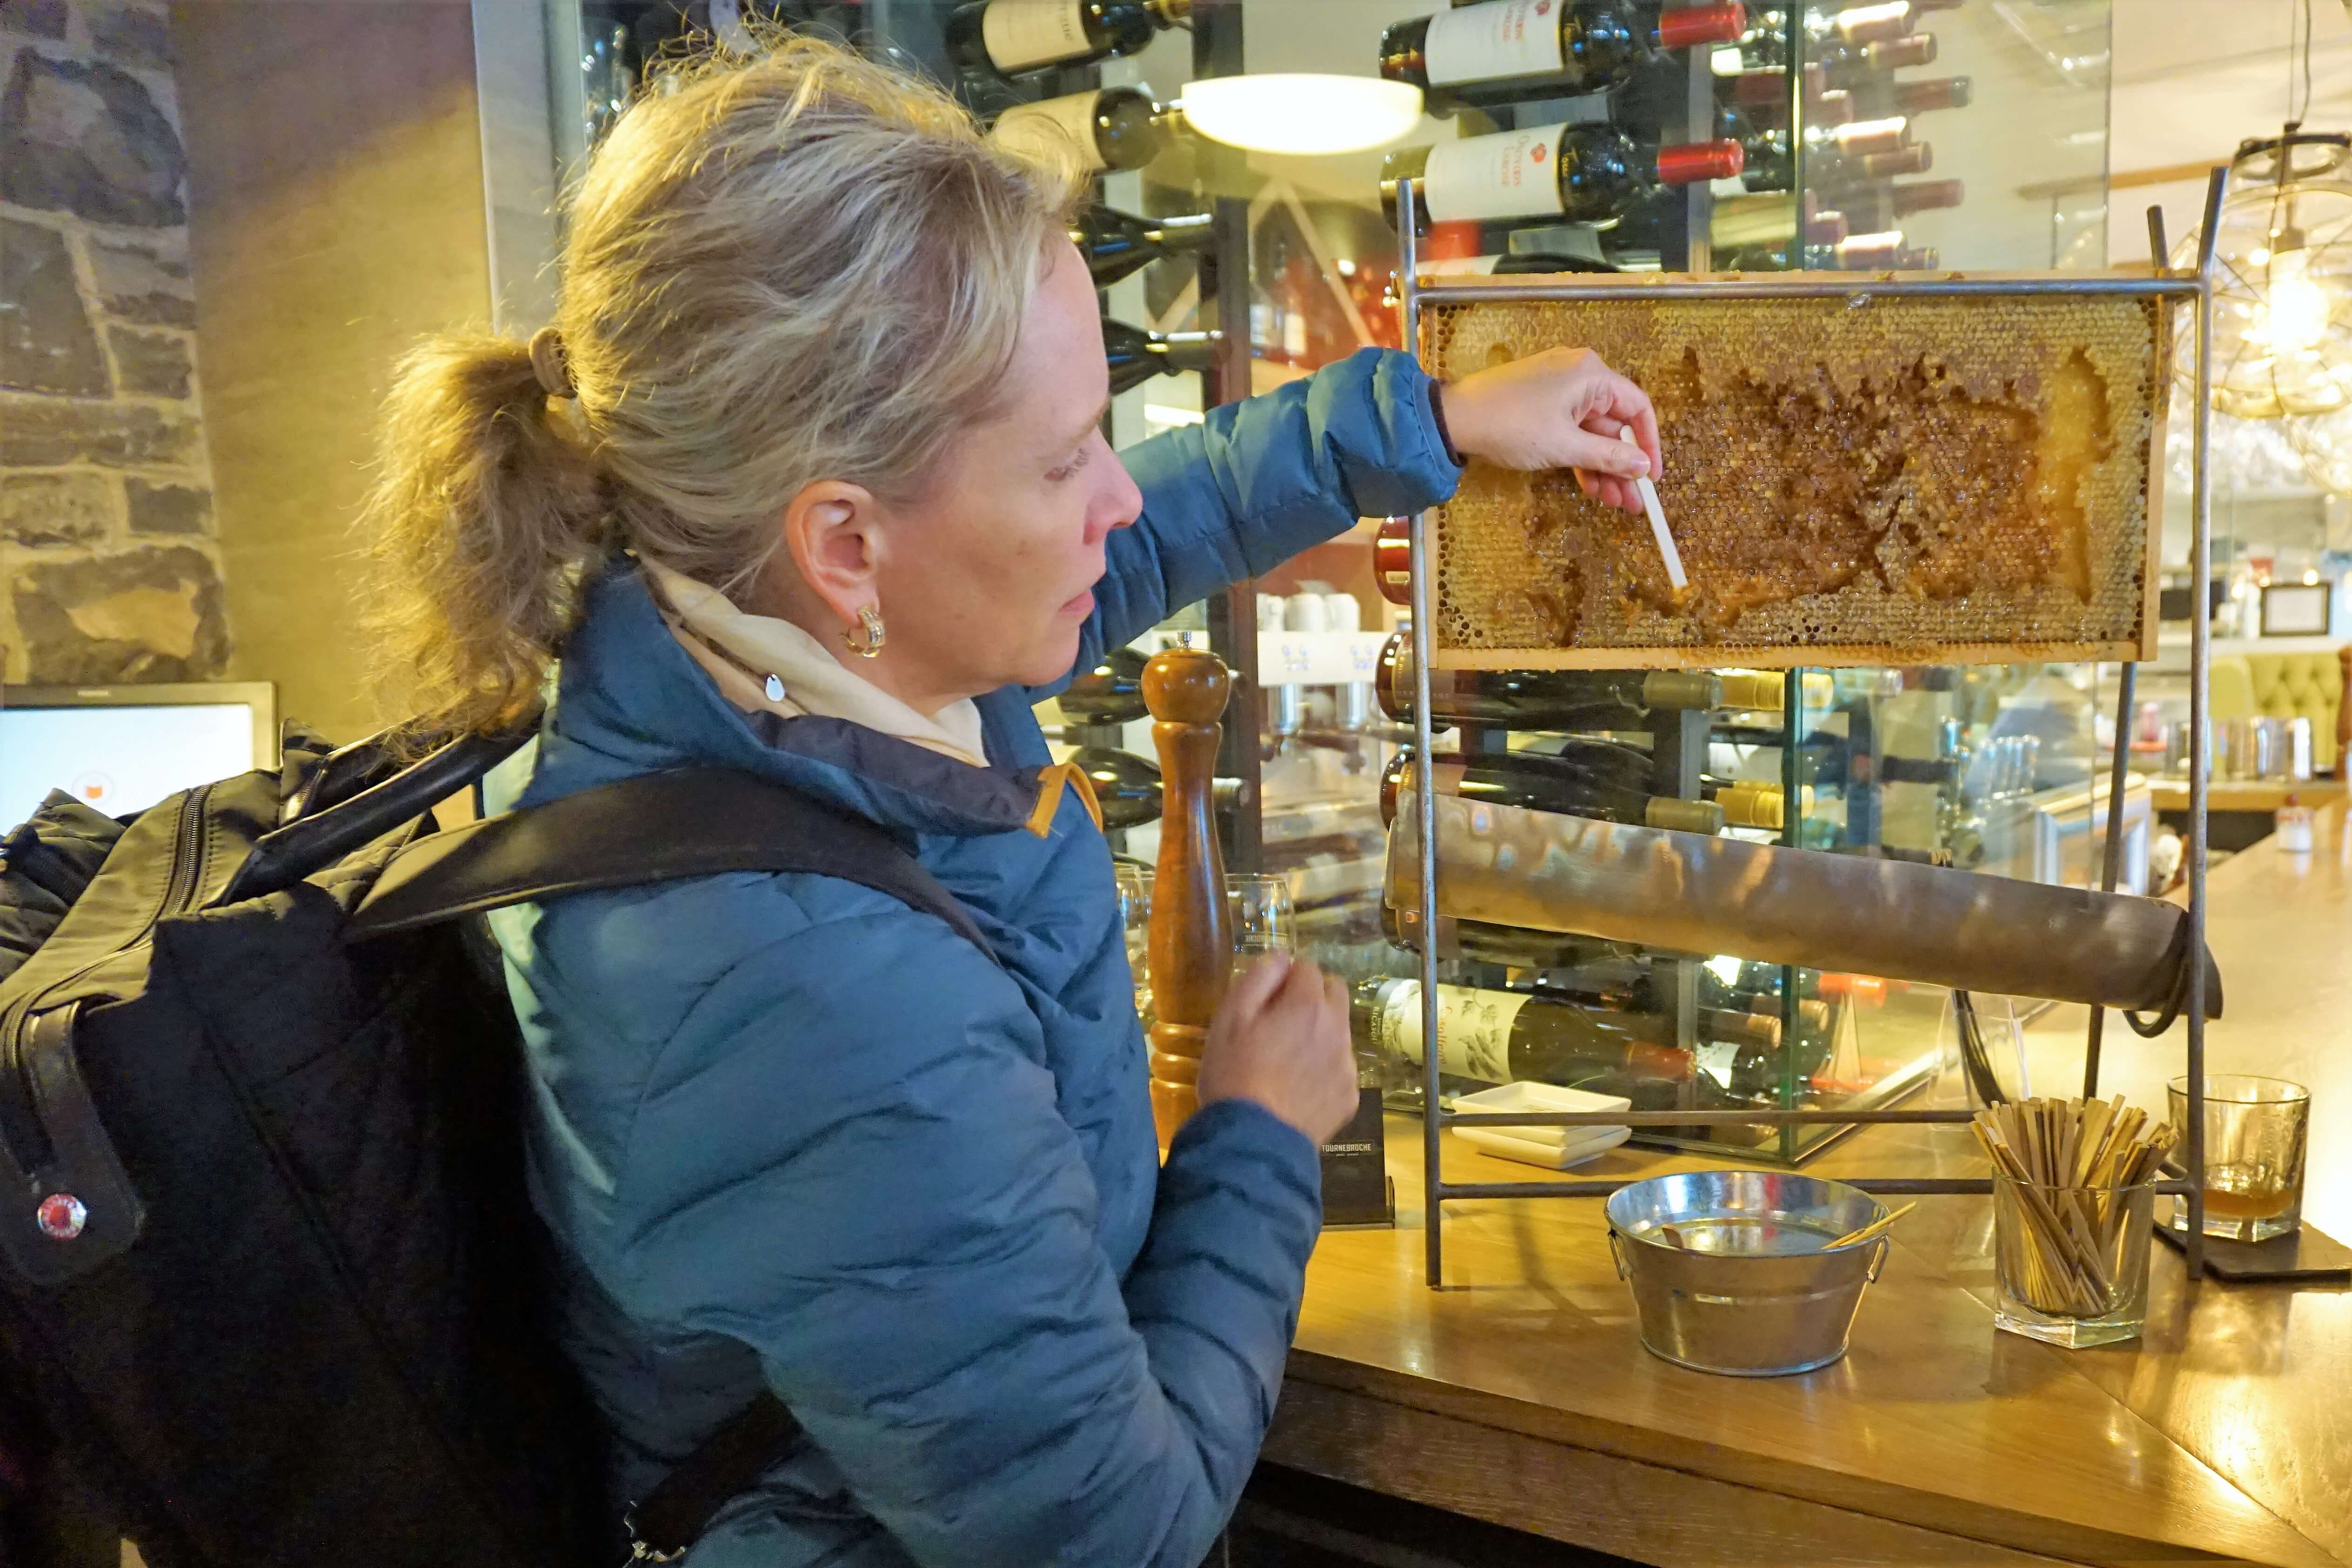 Sampling honey directly from the beehive at Tournebroche